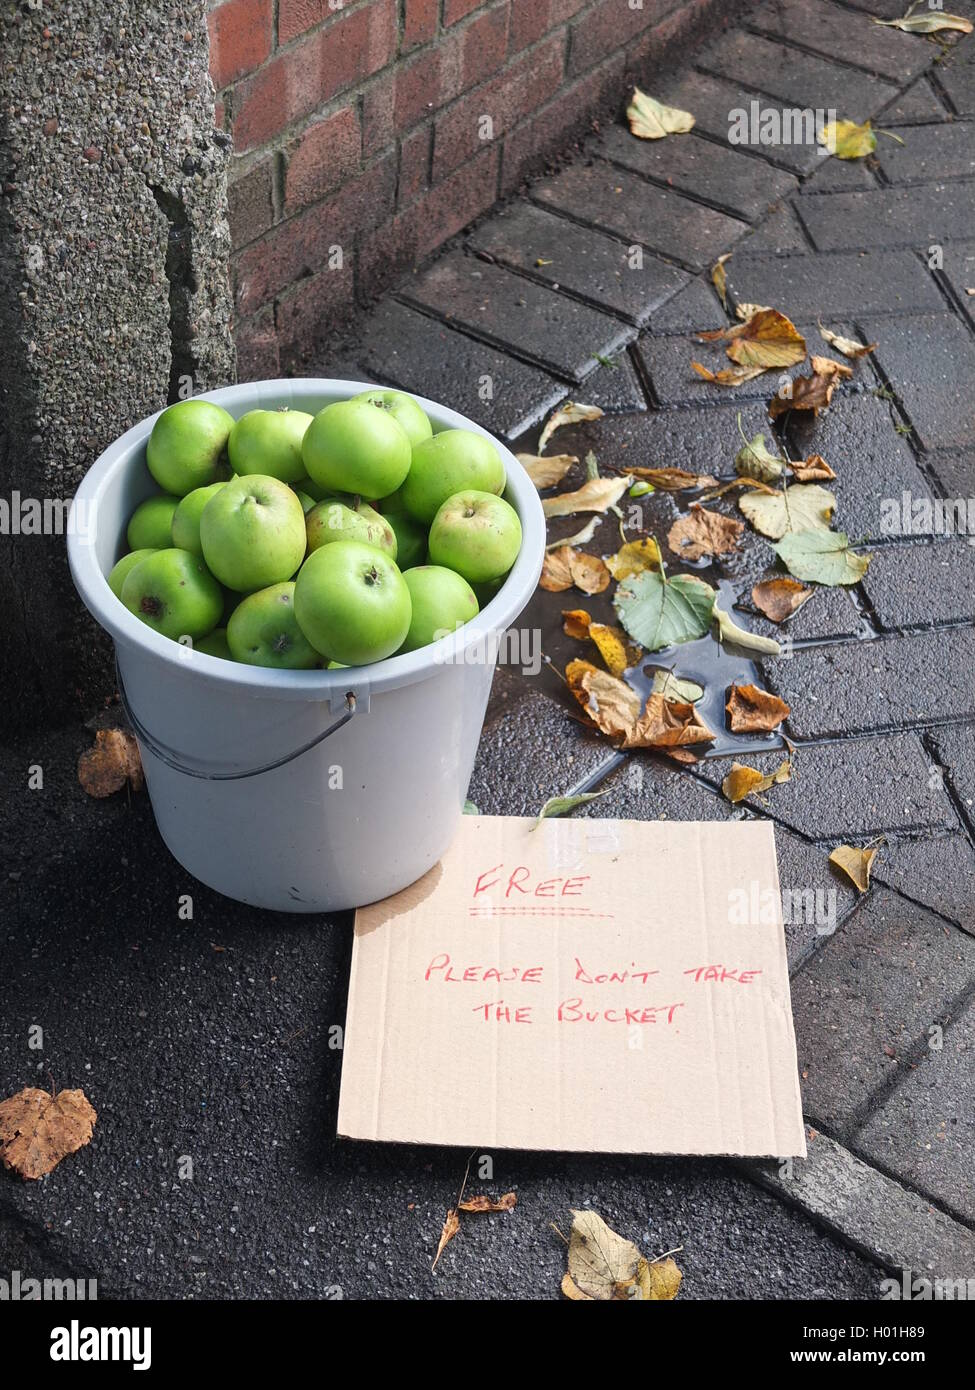 A bucket of cooking apples offered for free to passers by in Rivelin Valley, Sheffield. Stock Photo